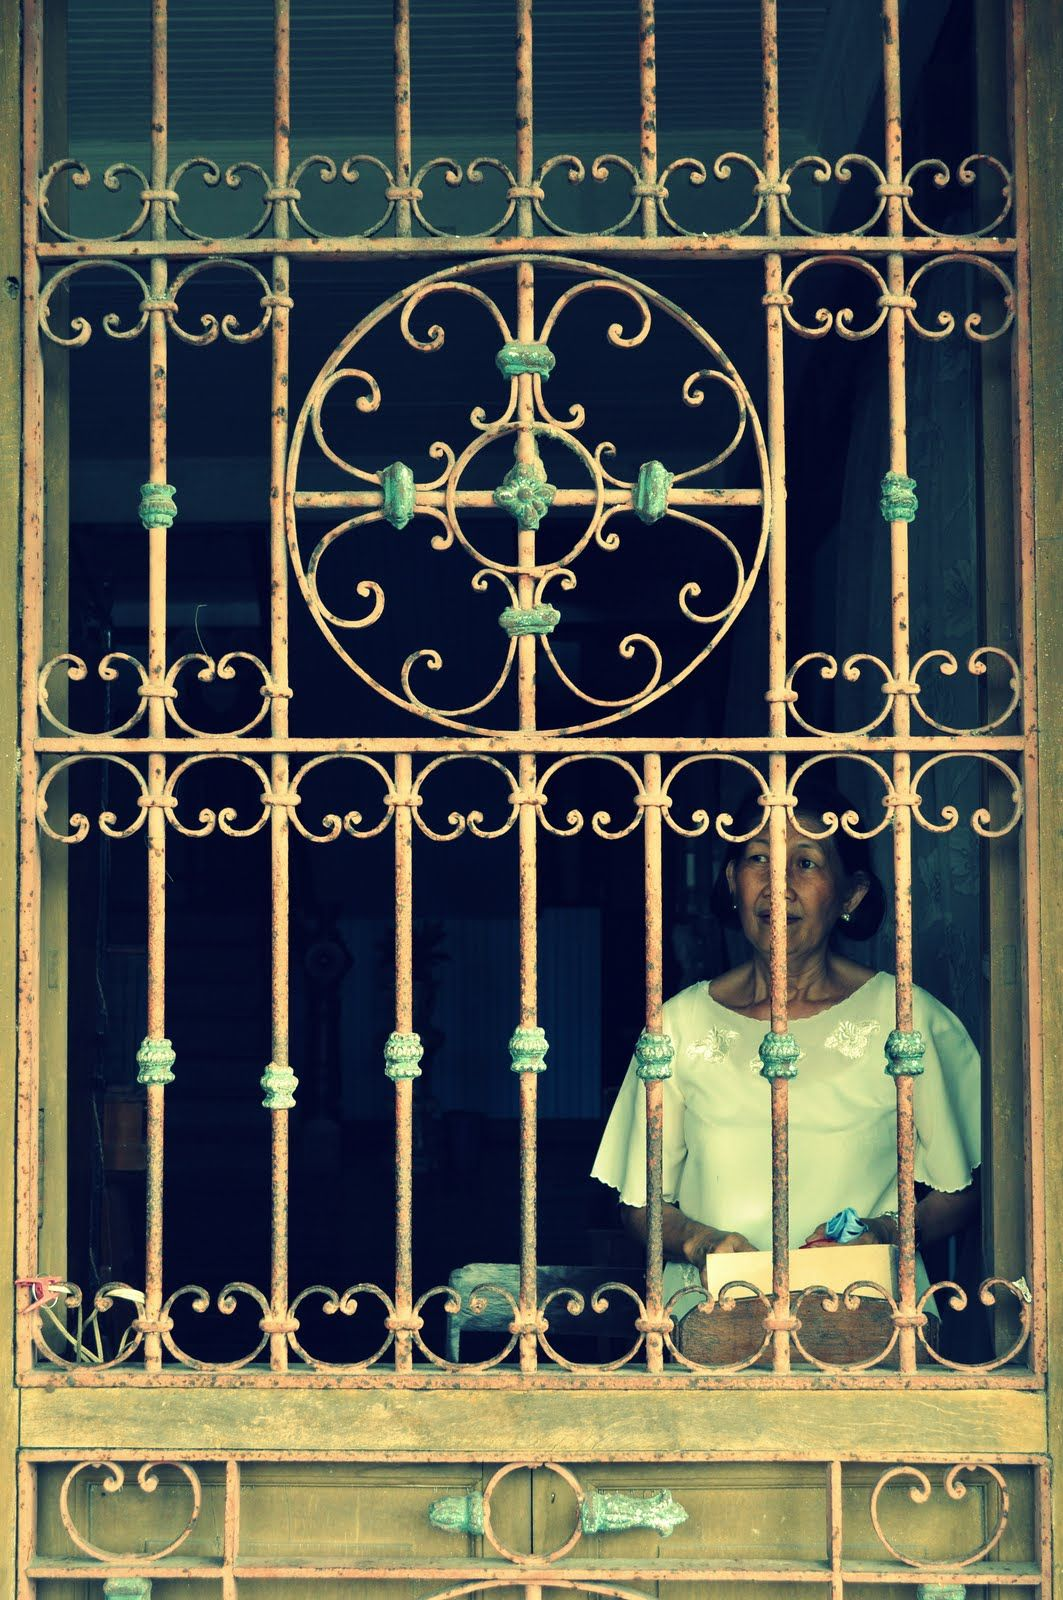 Balay ni tana dicang old woman dicang 39 s house negros for Window grills design in the philippines